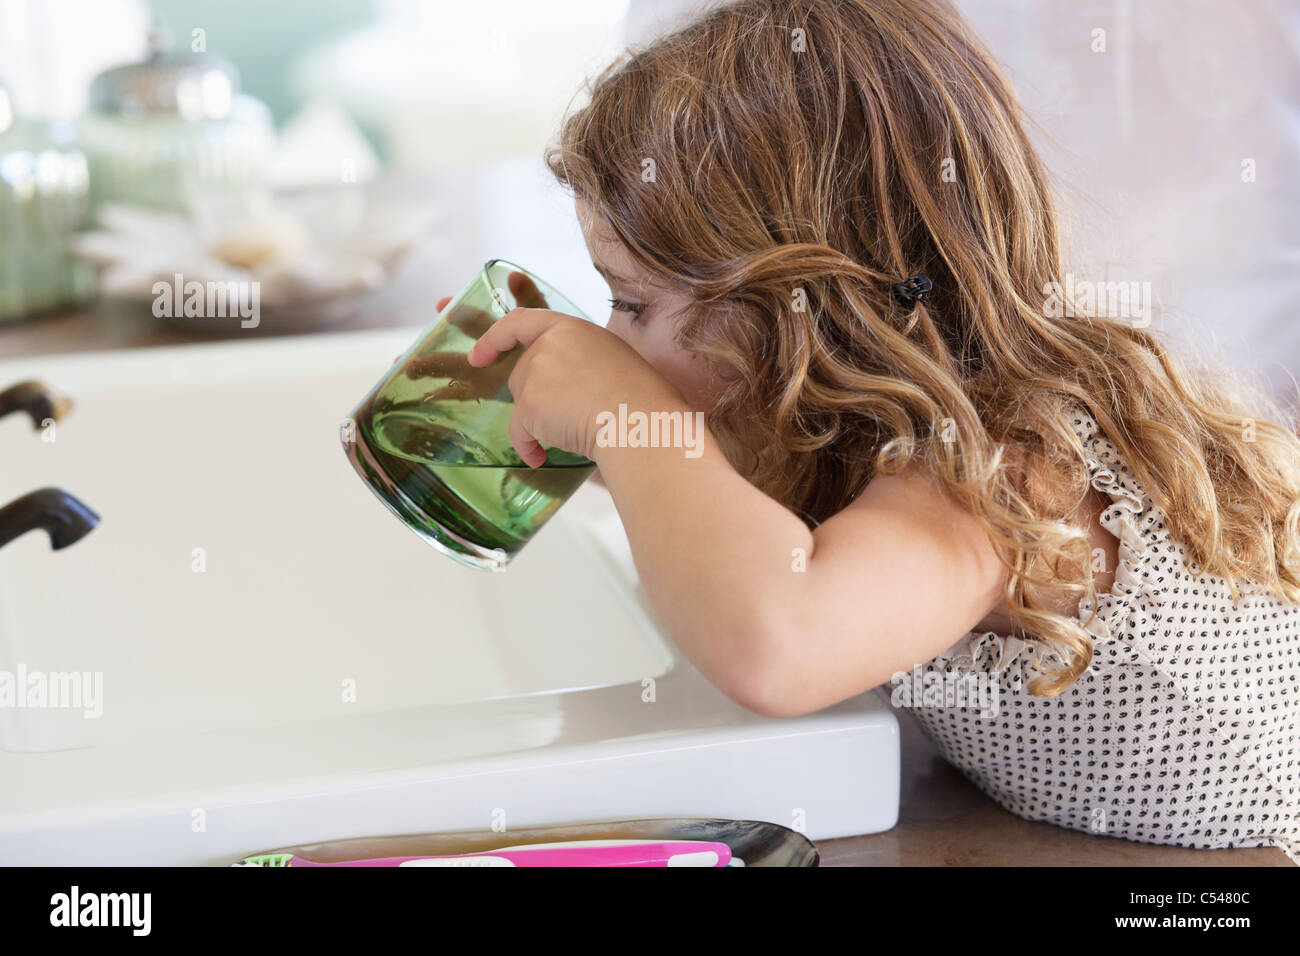 Cute little girl drinking water at bathroom sink - Stock Image